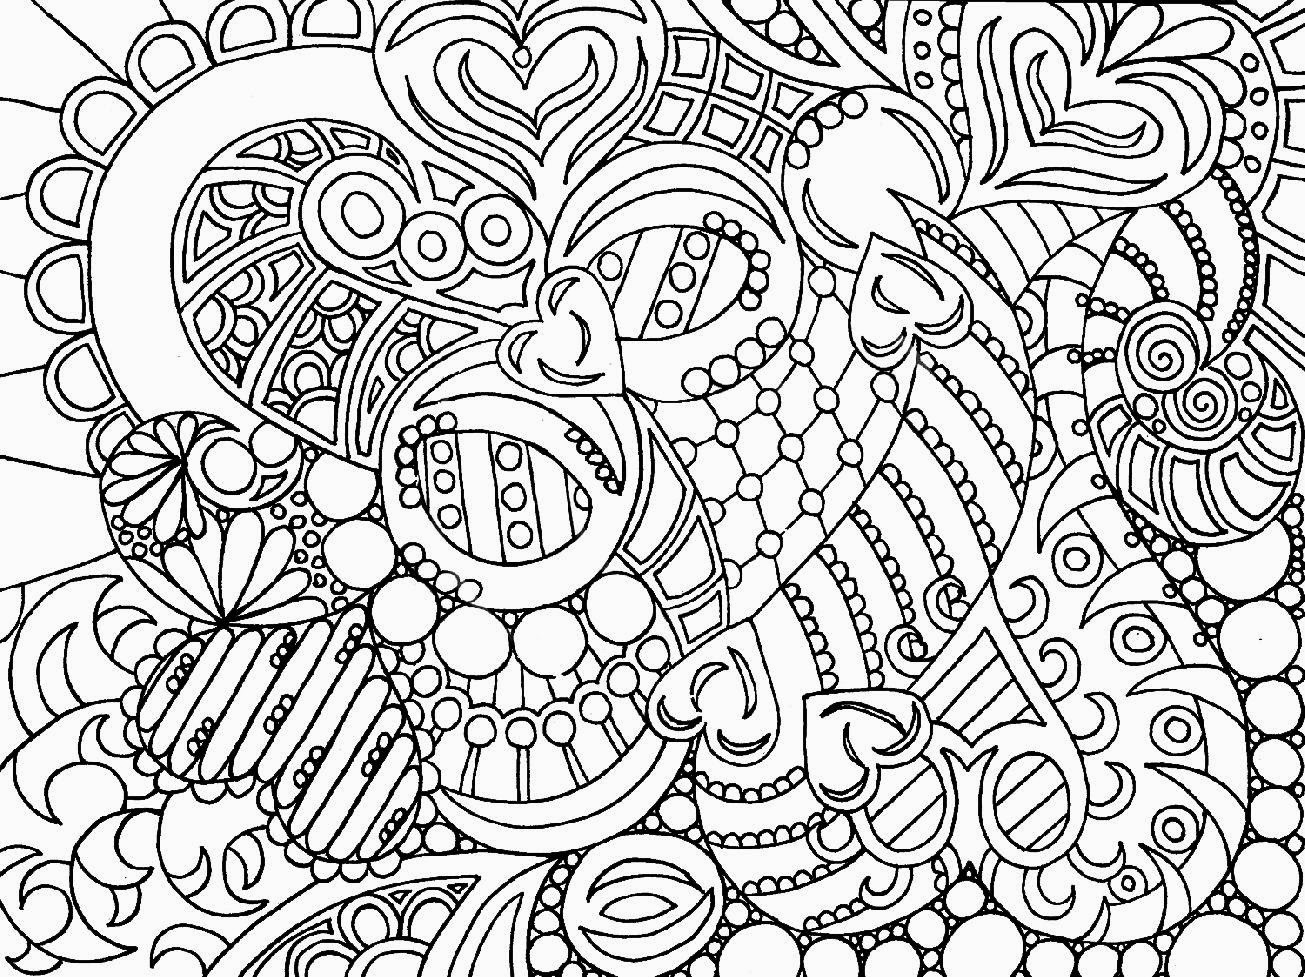 Adult Coloring Sheets Free Coloring Sheet Printable Coloring Pages Adults